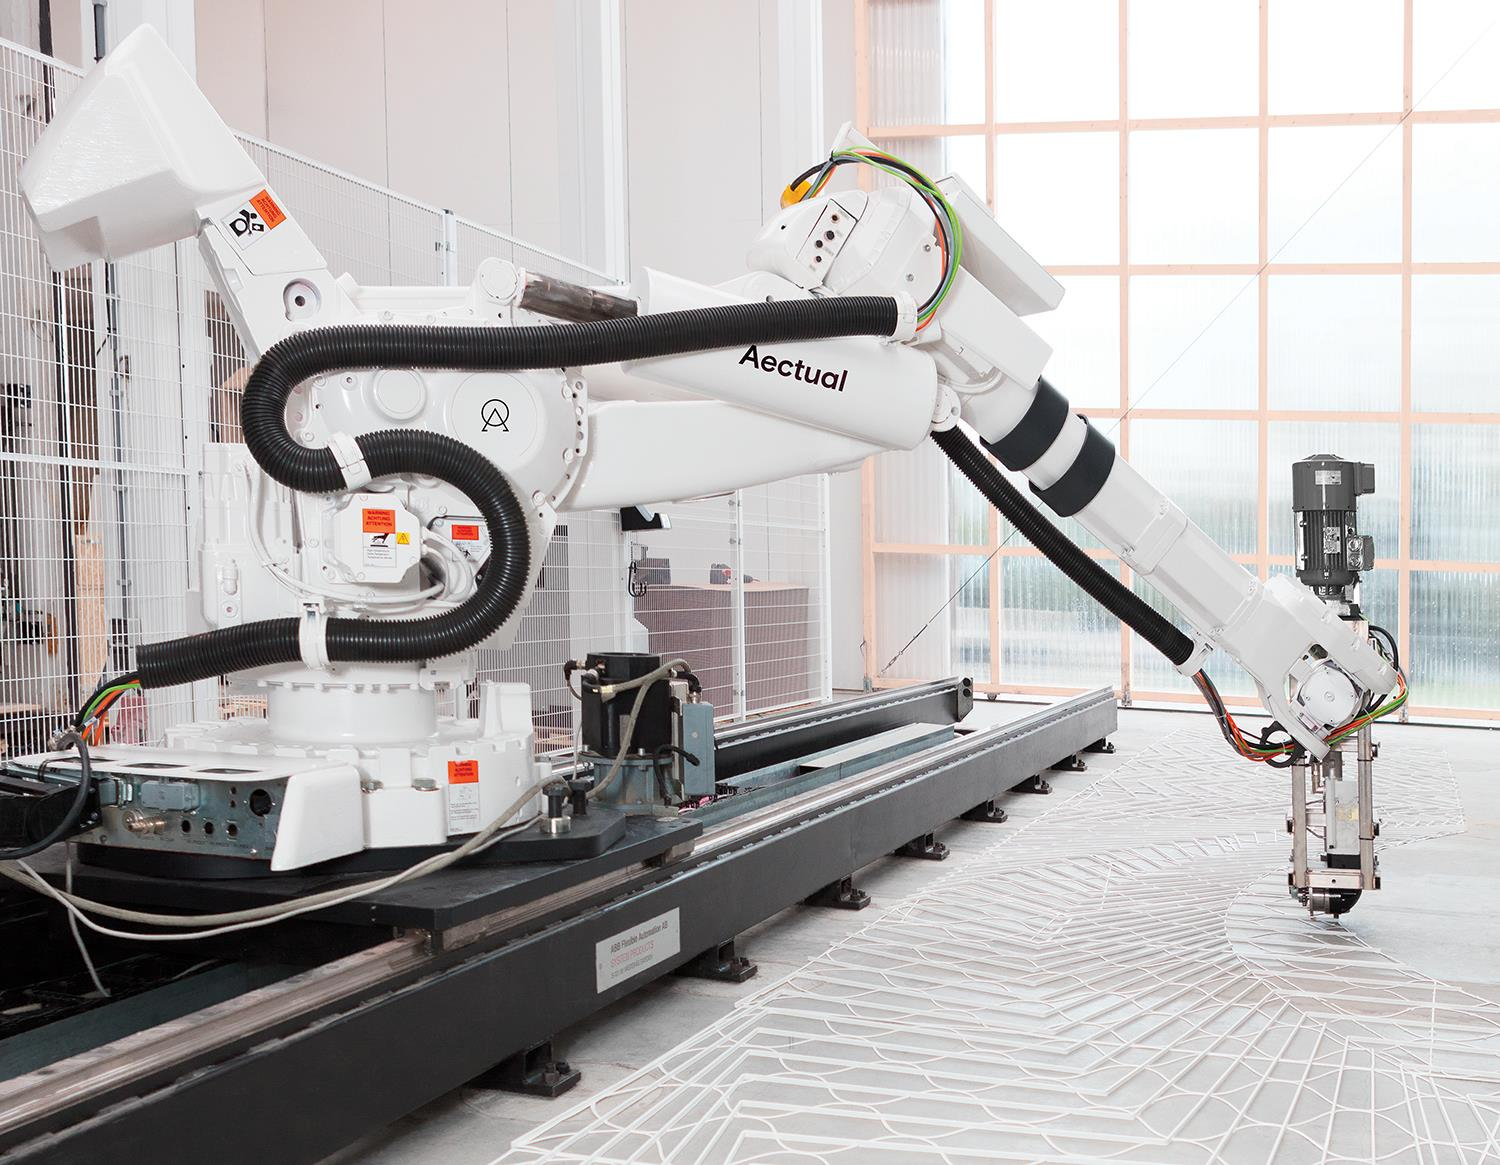 3D Printed Terrazzo Floors with large robots. #3dprinting